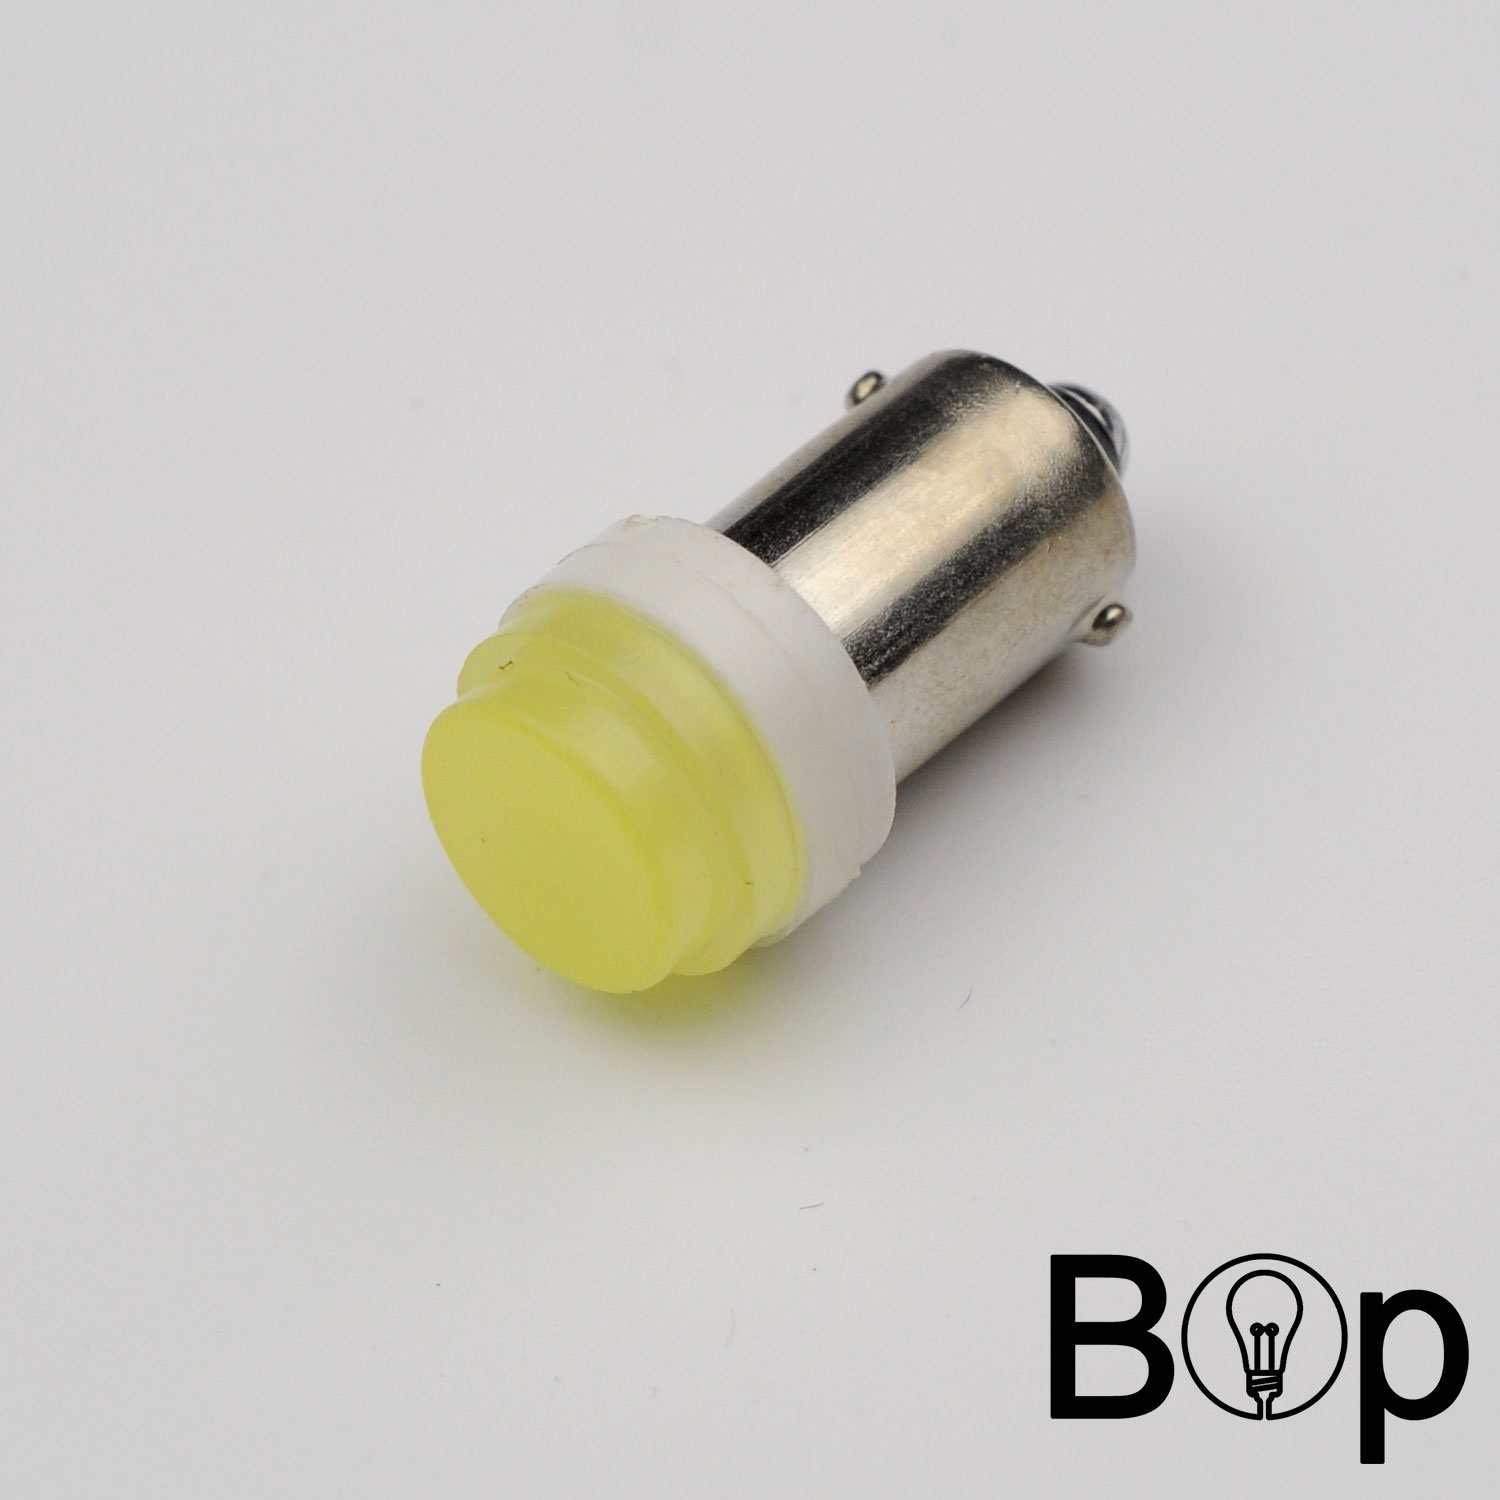 2016 New BOP 2W BA9S T4W Ceramic 1 COB 2W White LED Car License Plate Light Bulb Door Lamp DC12V bus linghting free shipping(China (Mainland))